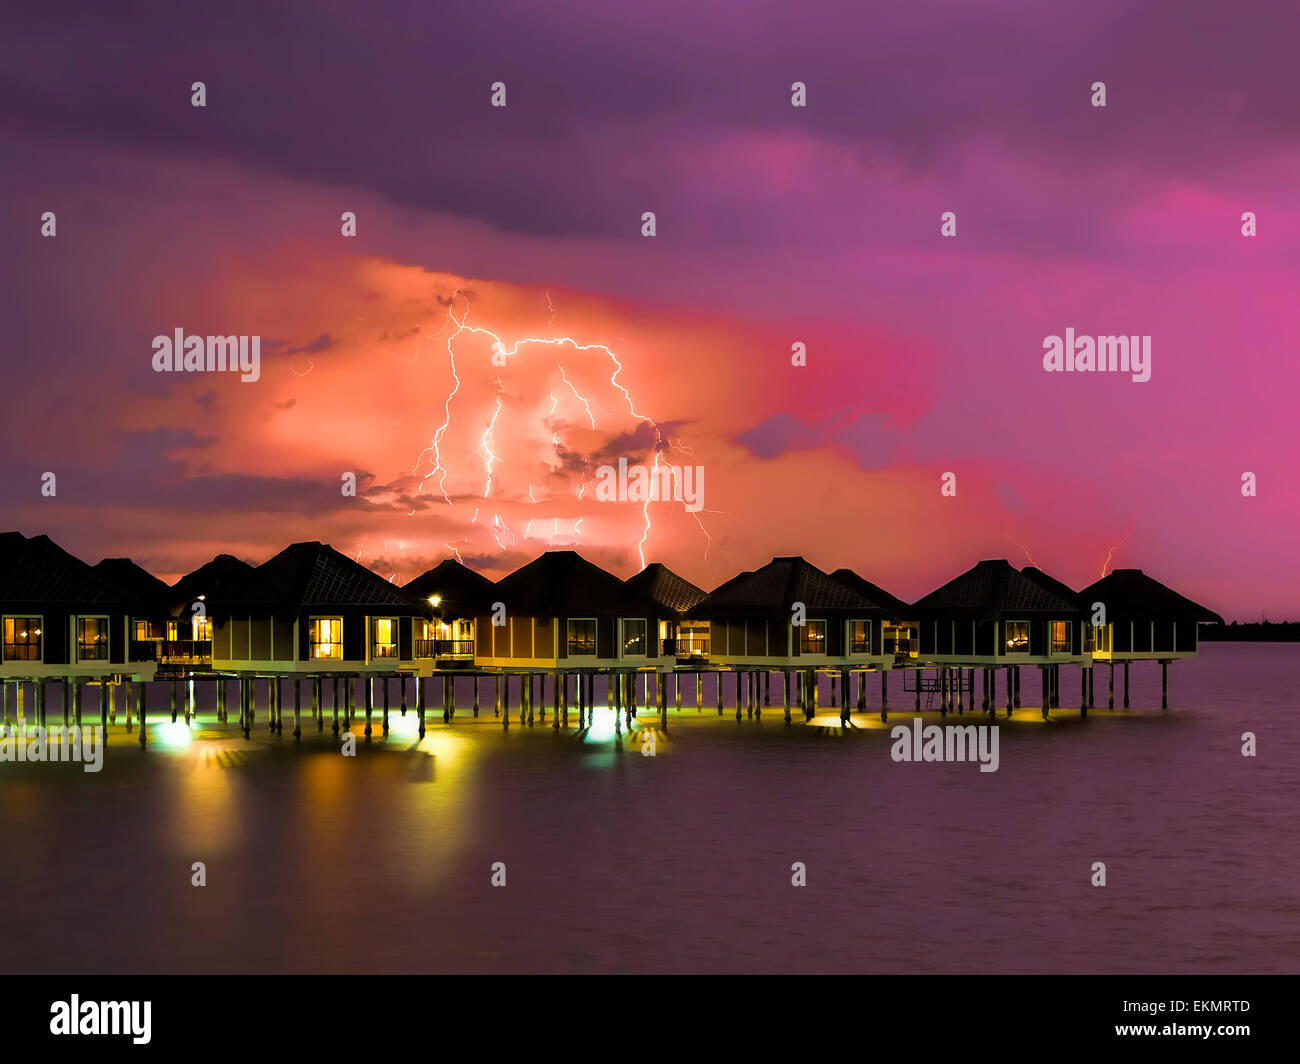 Thunderstorm - Stock Image